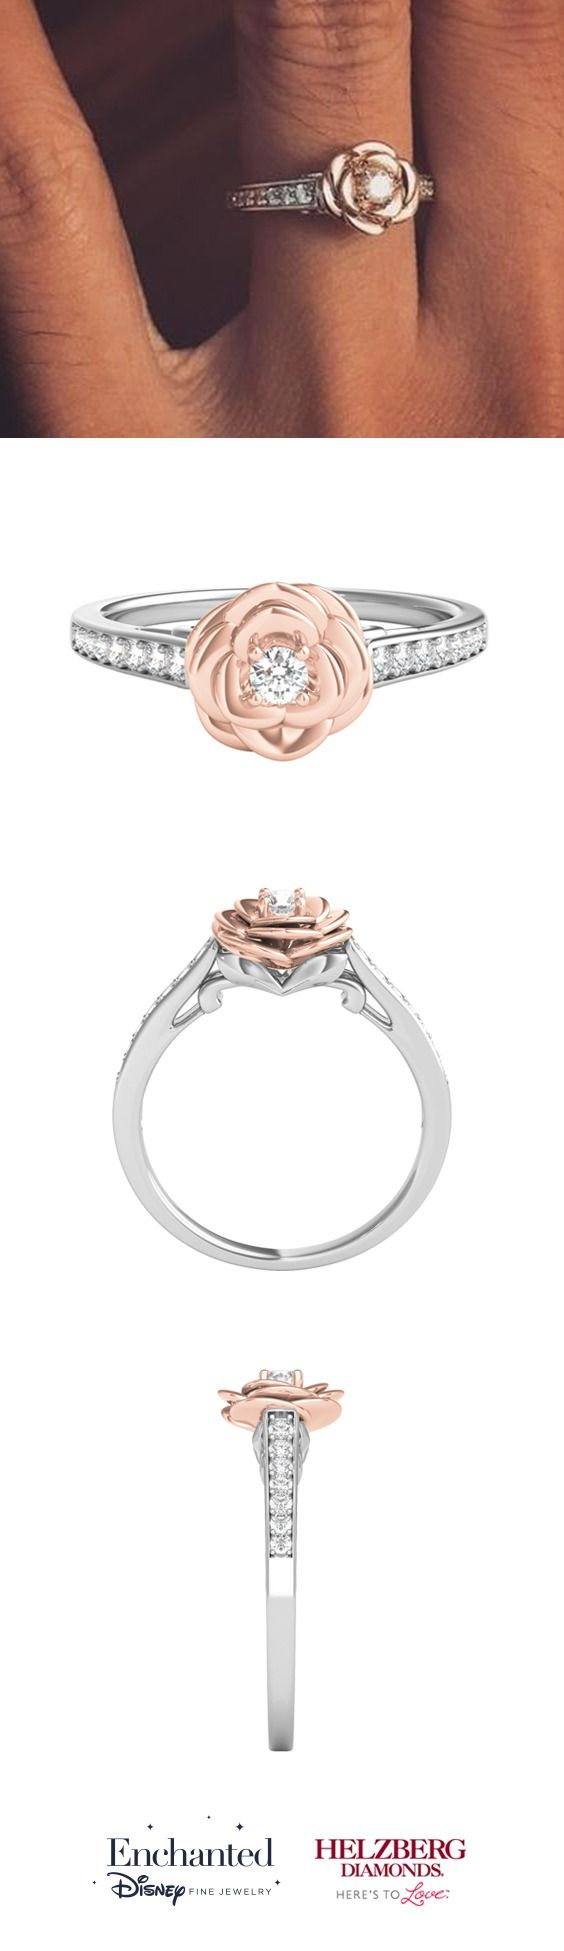 enchanted disney 15 ct tw diamond belle rose ring in sterling silver 10k rose gold disney wedding ringsdisney princess - Disney Princess Wedding Rings